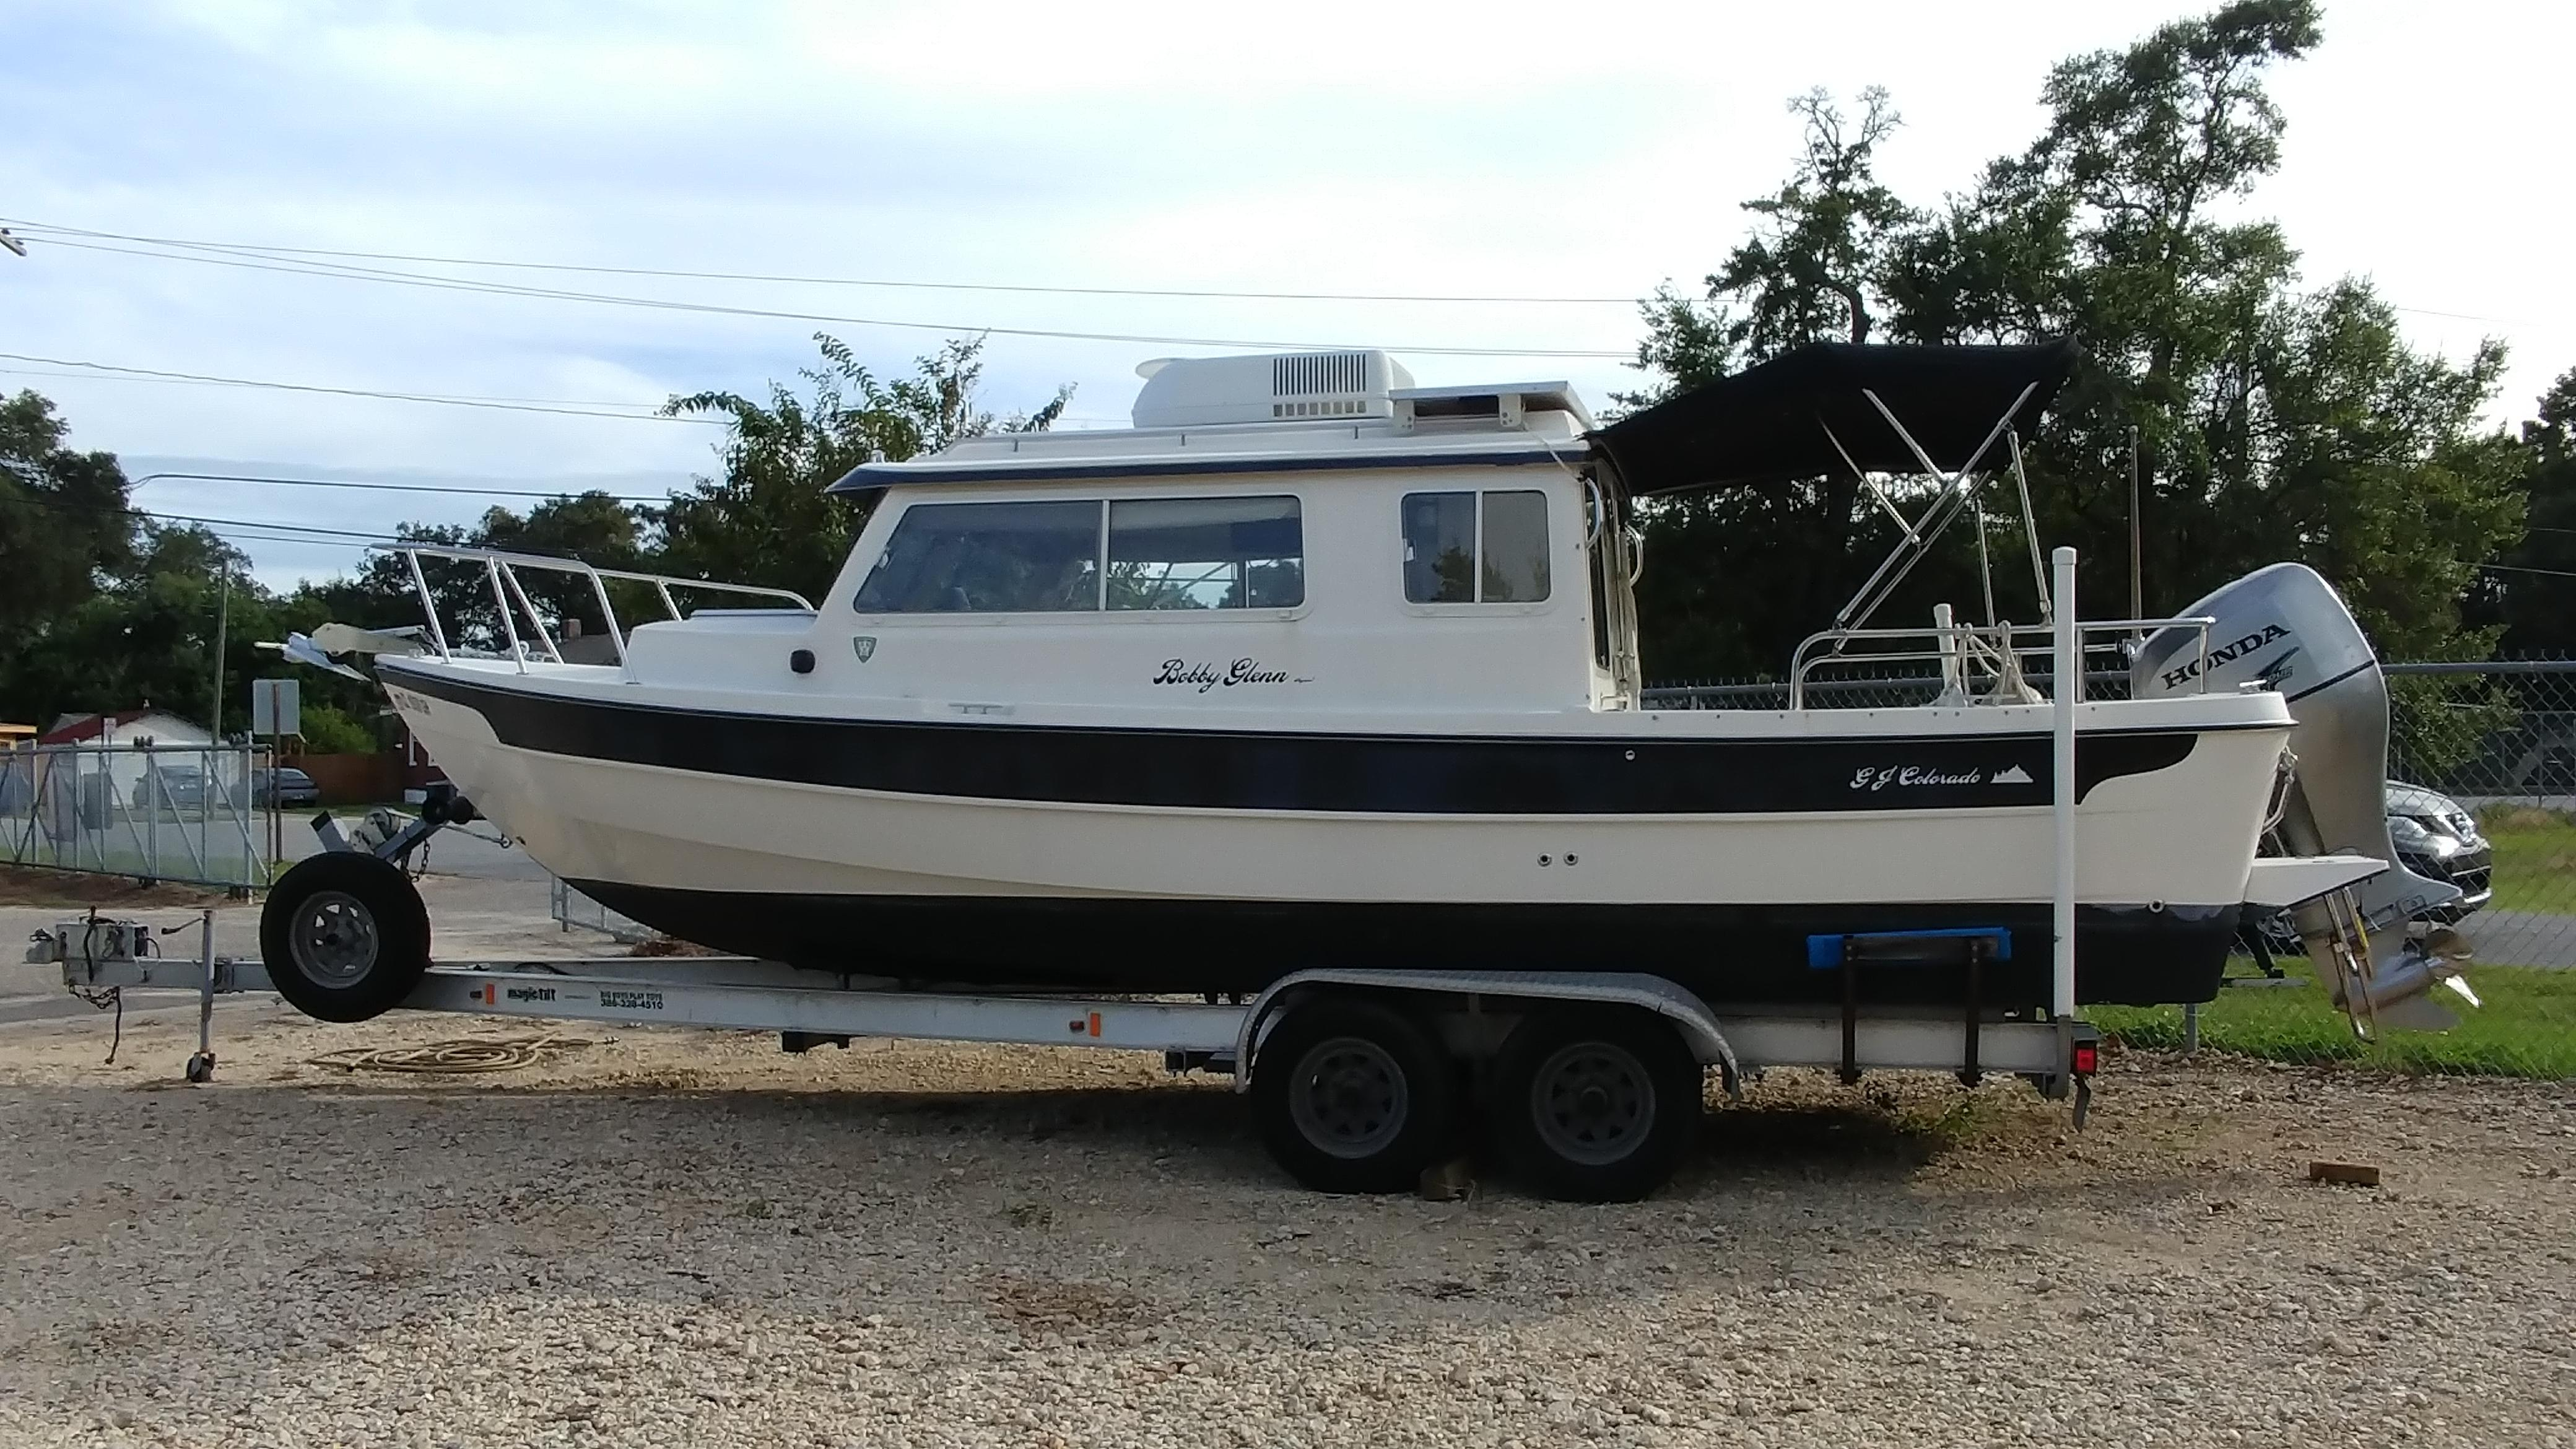 Wooden Boat For Sale Craigslist - Year of Clean Water